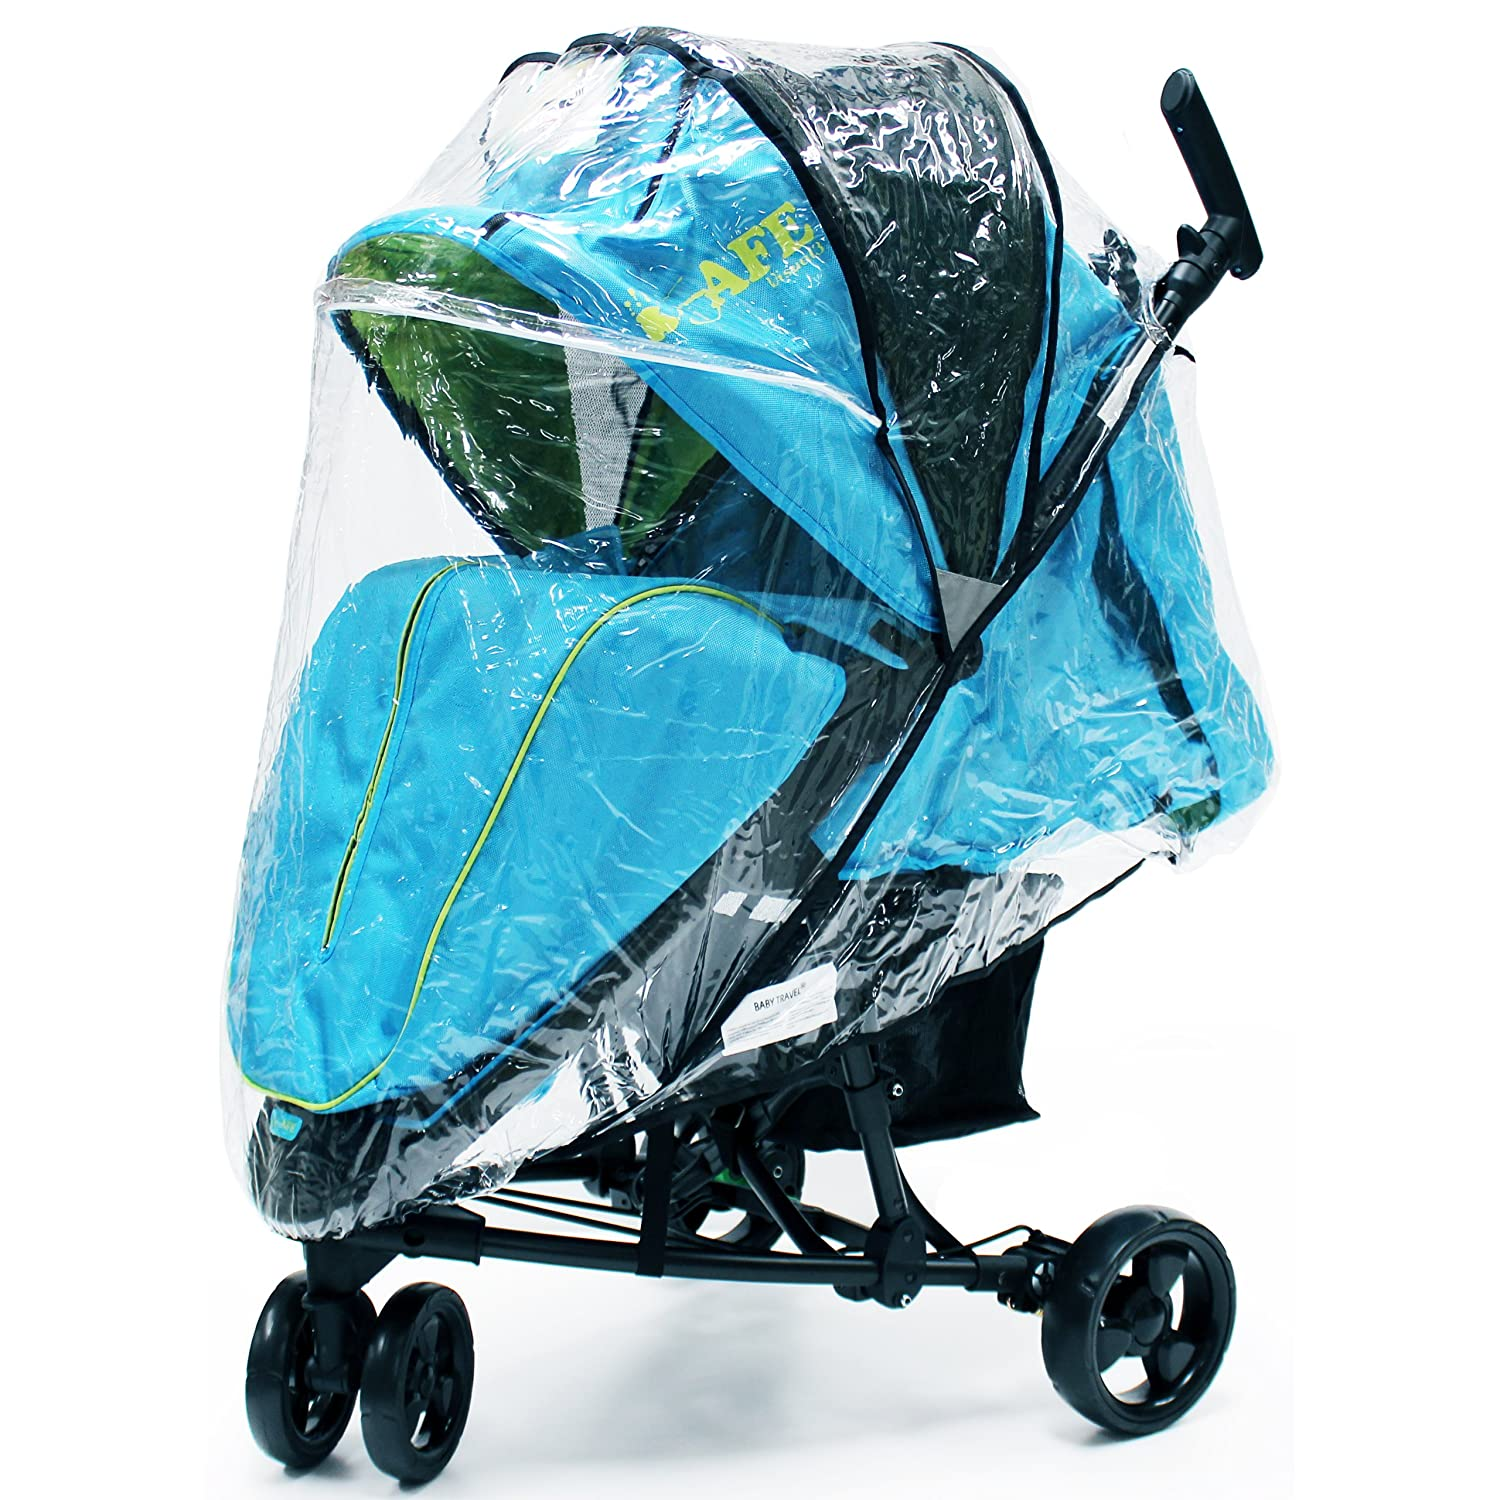 iSafe Visual 3 Rain Cover Weather Shield Baby Travel